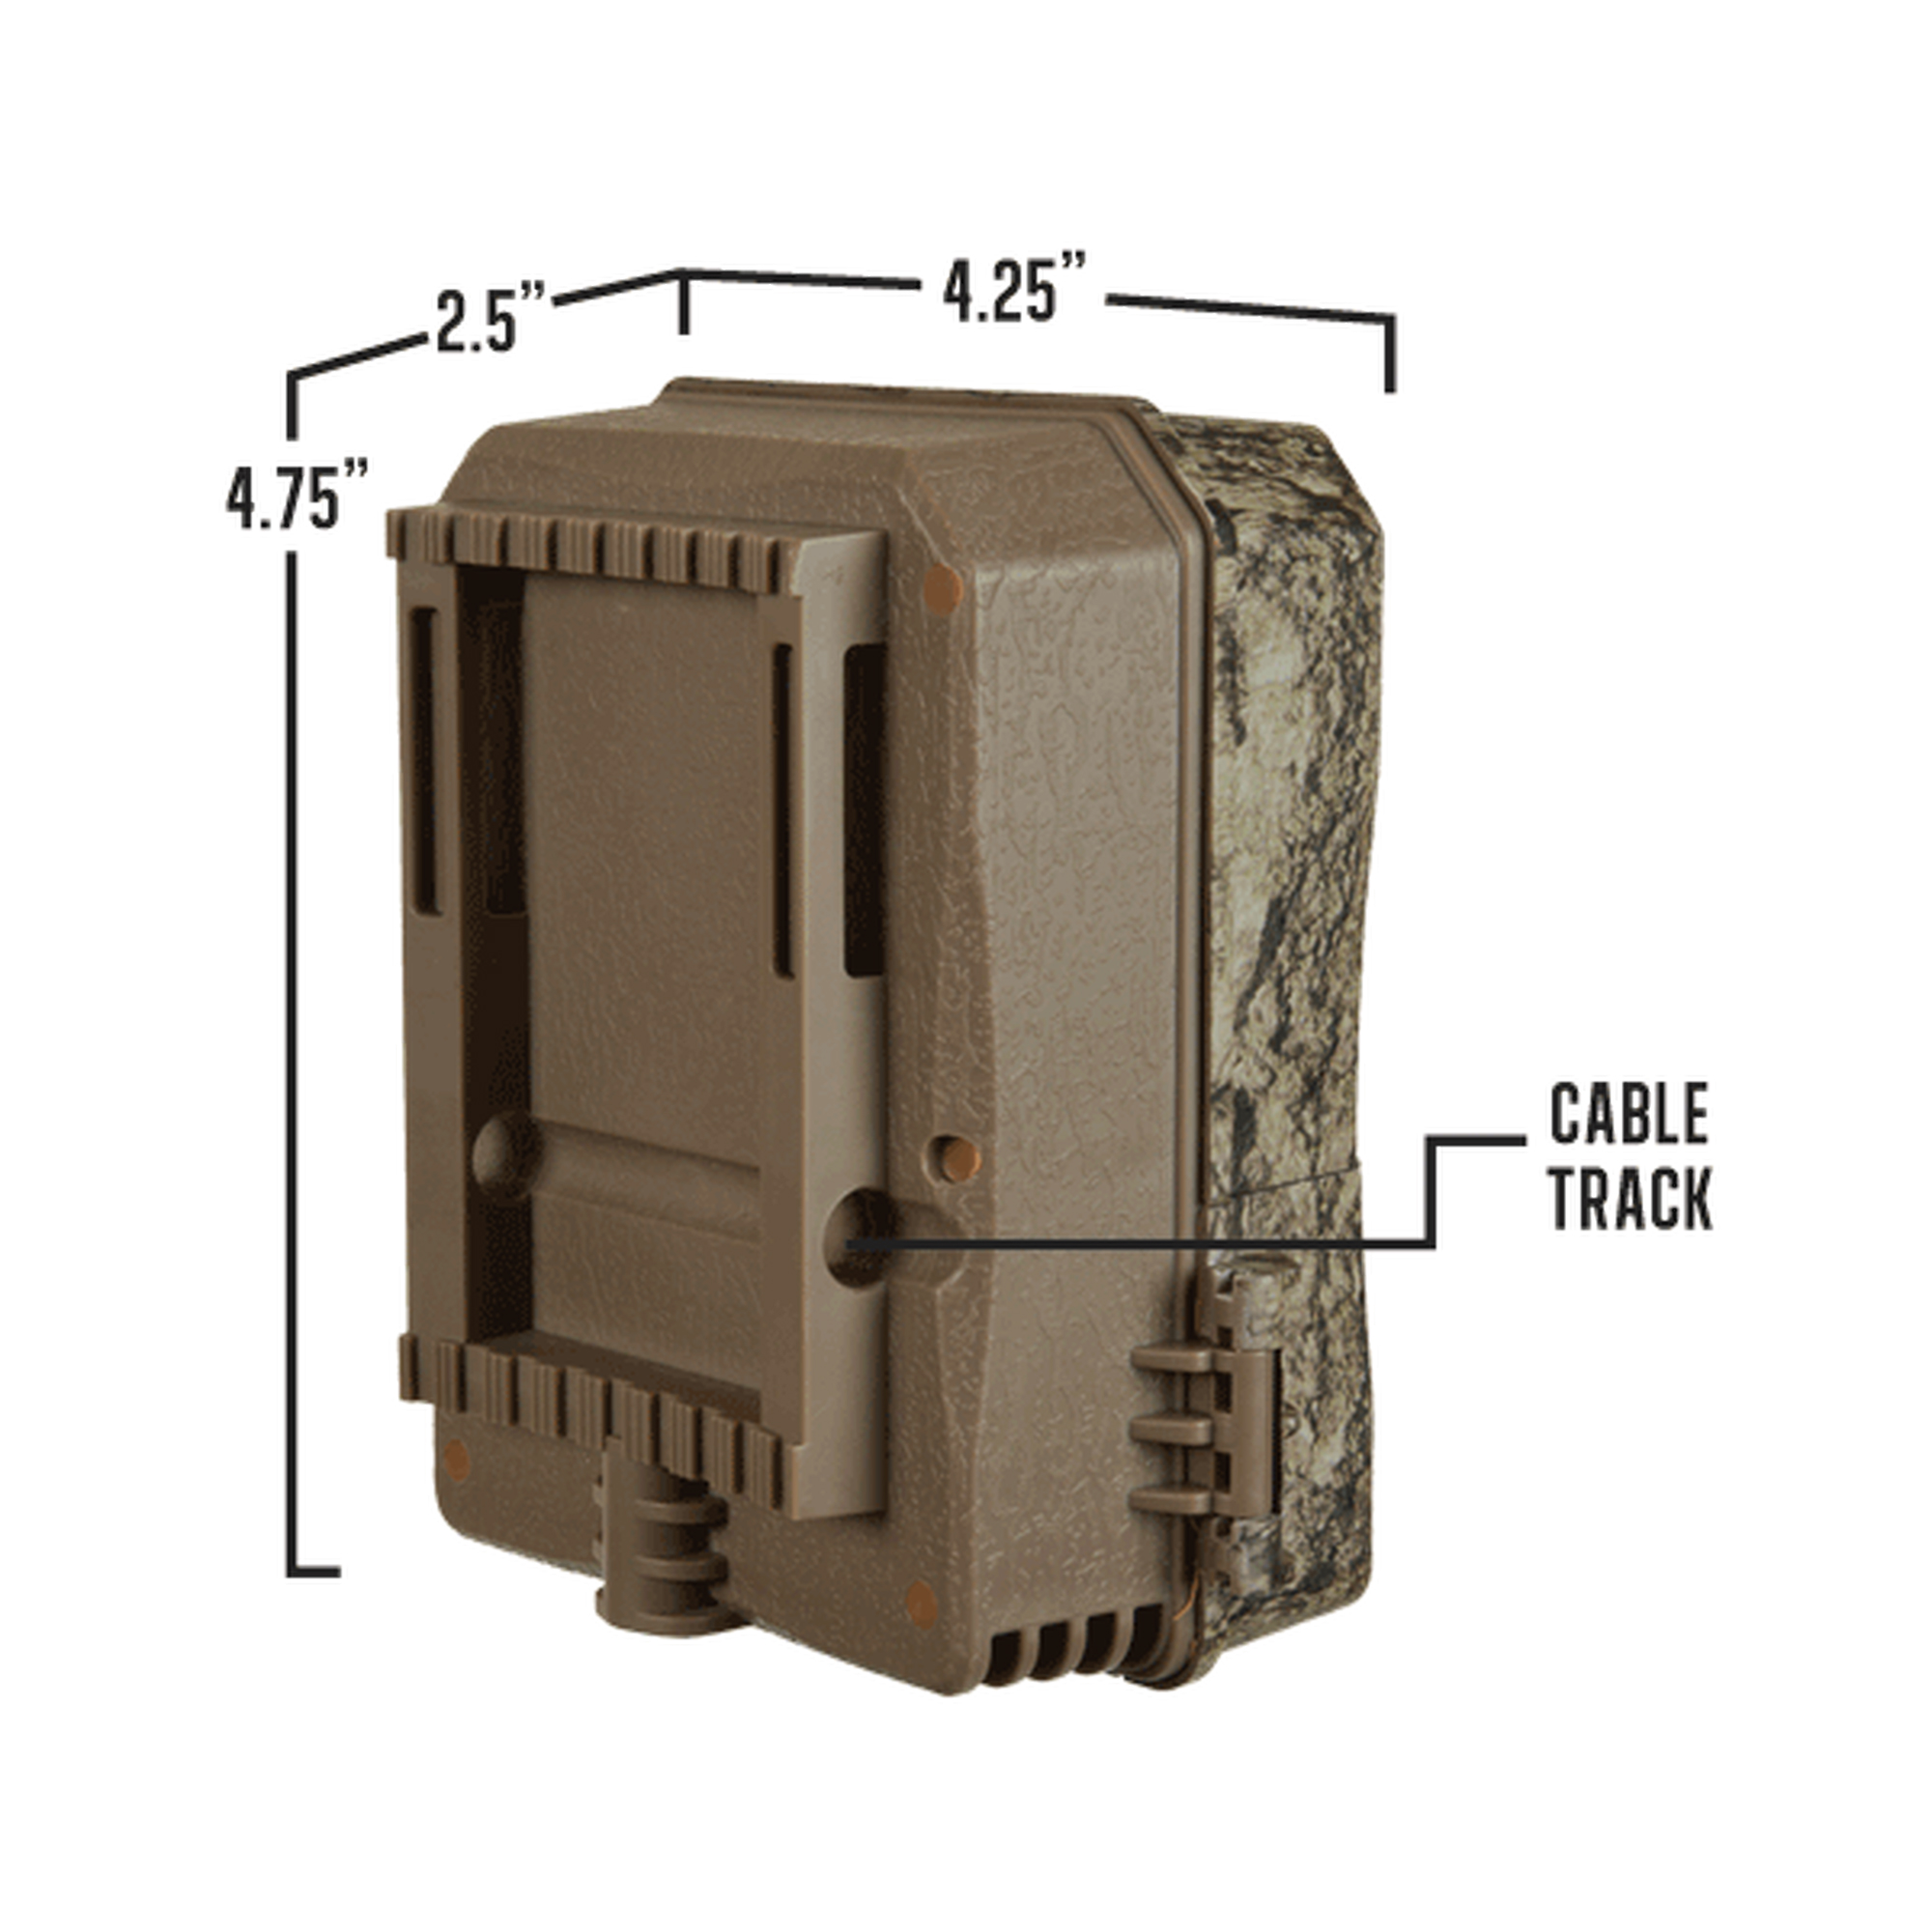 36 HE LEDs 20 MP Muddy Pro-Cam 20 Trail Camera MTC600 with Invisable Flash